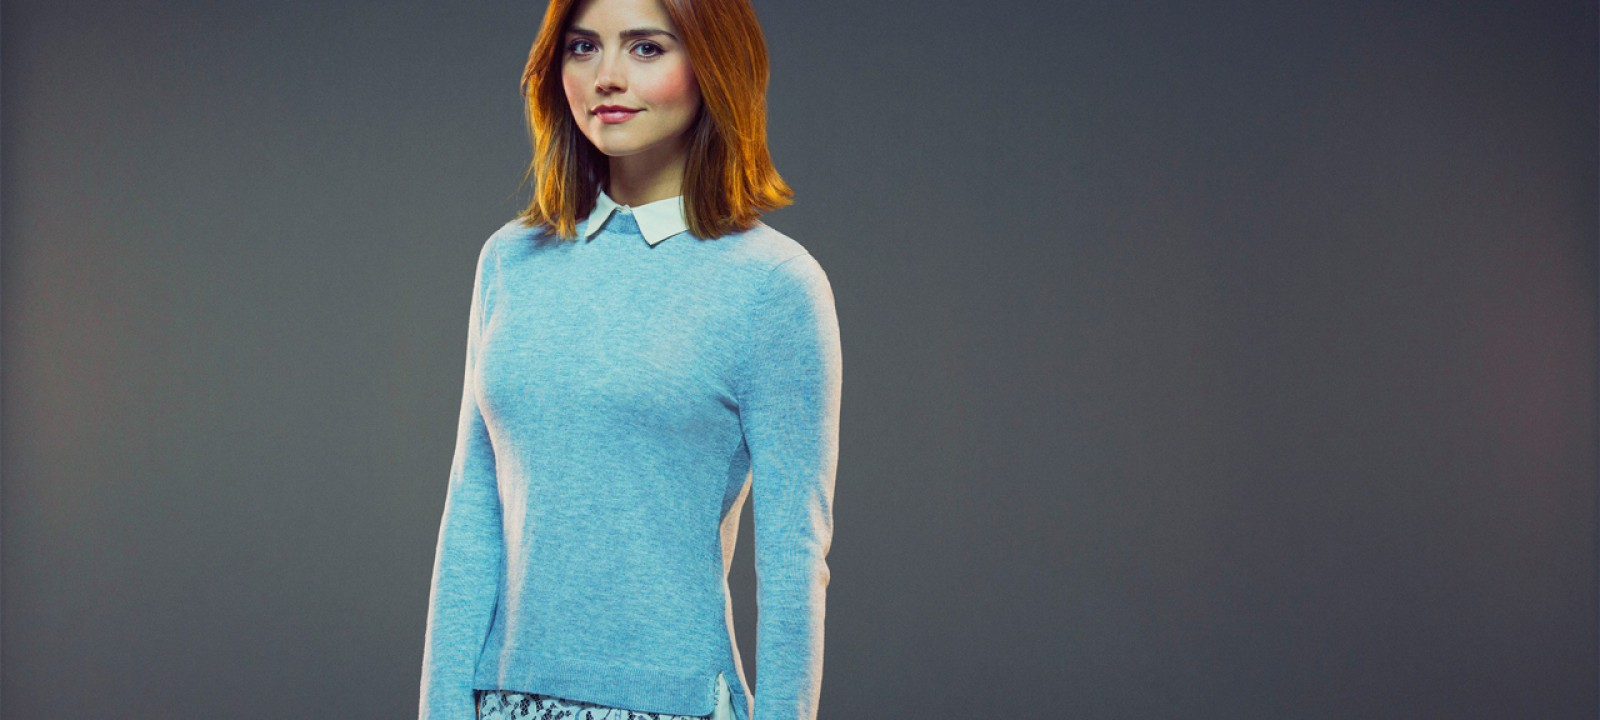 Jenna Coleman (Photo: BBC)